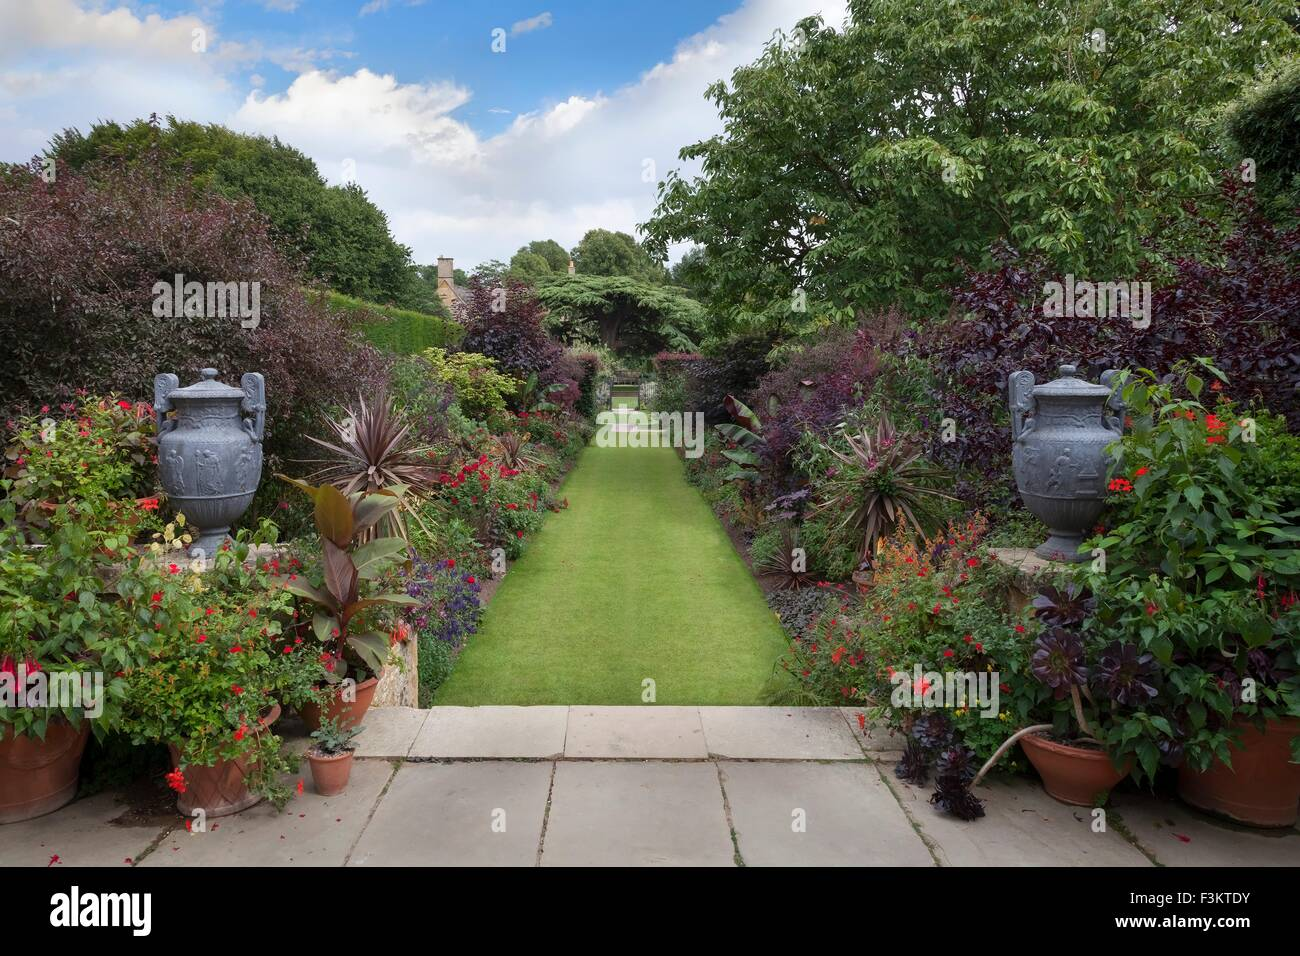 English garden borders with steps, urns and lawn. - Stock Image